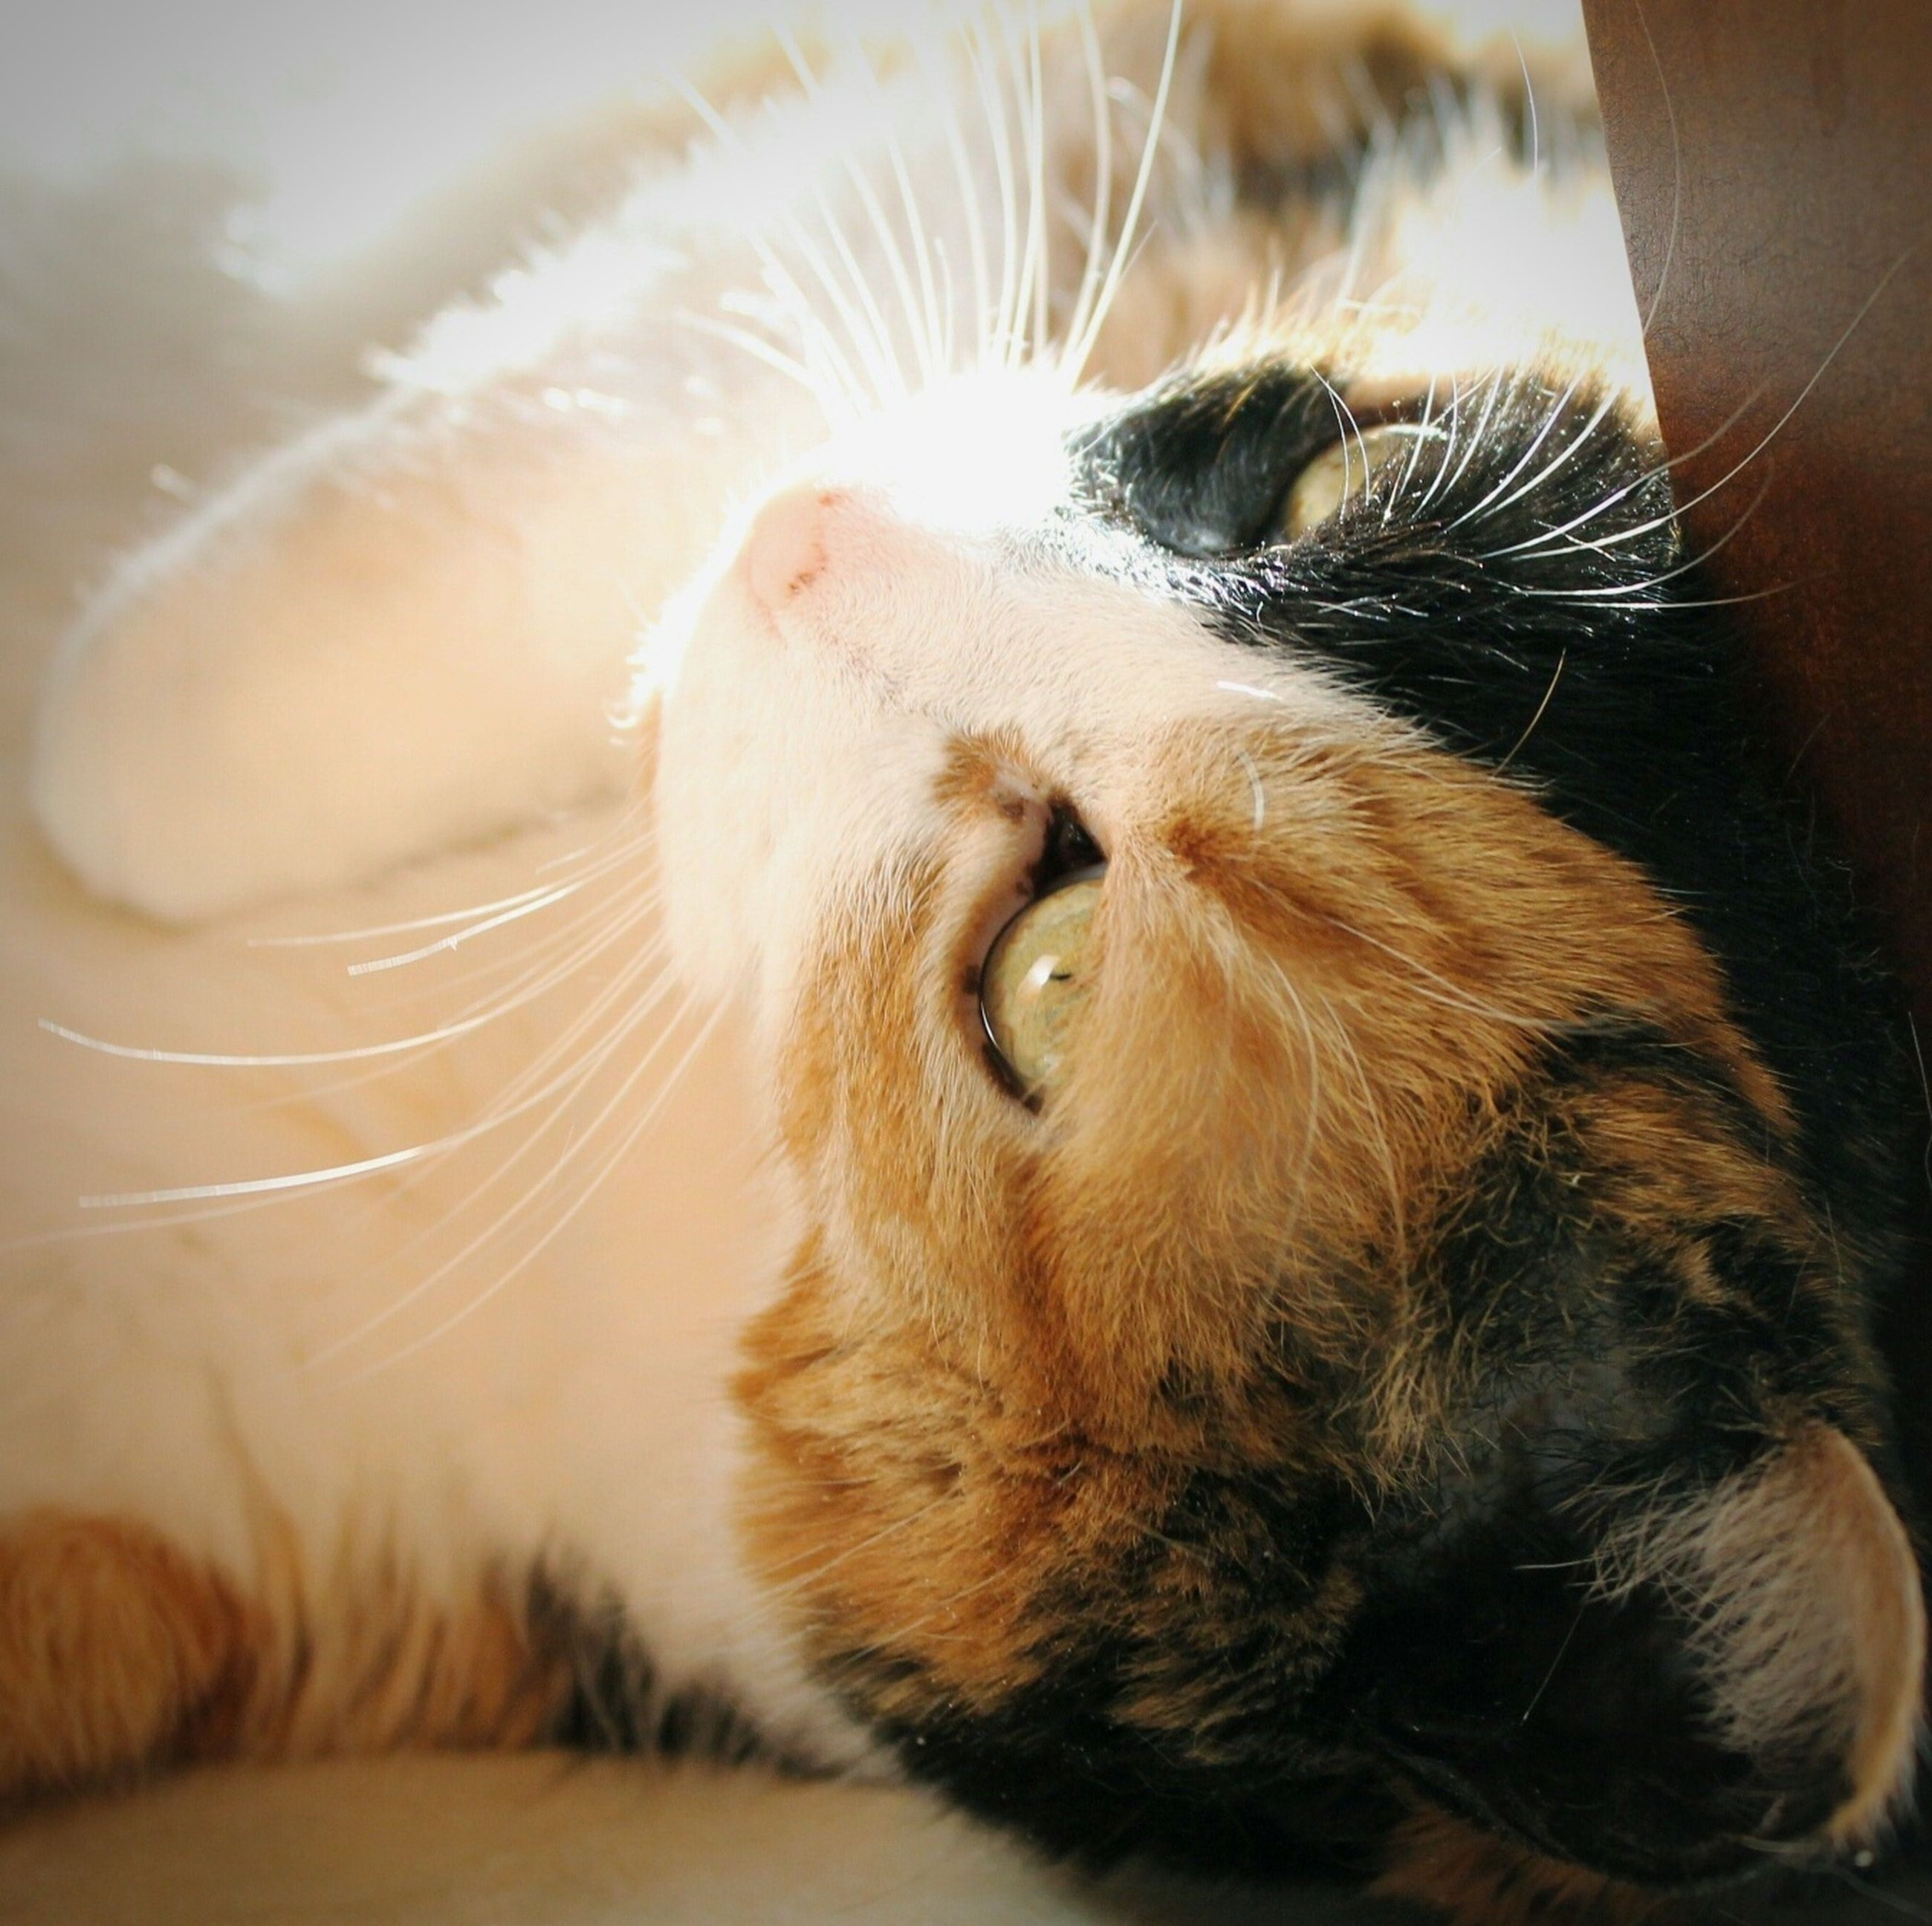 animal themes, one animal, mammal, domestic animals, pets, indoors, animal head, close-up, animal body part, whisker, domestic cat, feline, relaxation, part of, cat, focus on foreground, resting, looking away, lying down, portrait